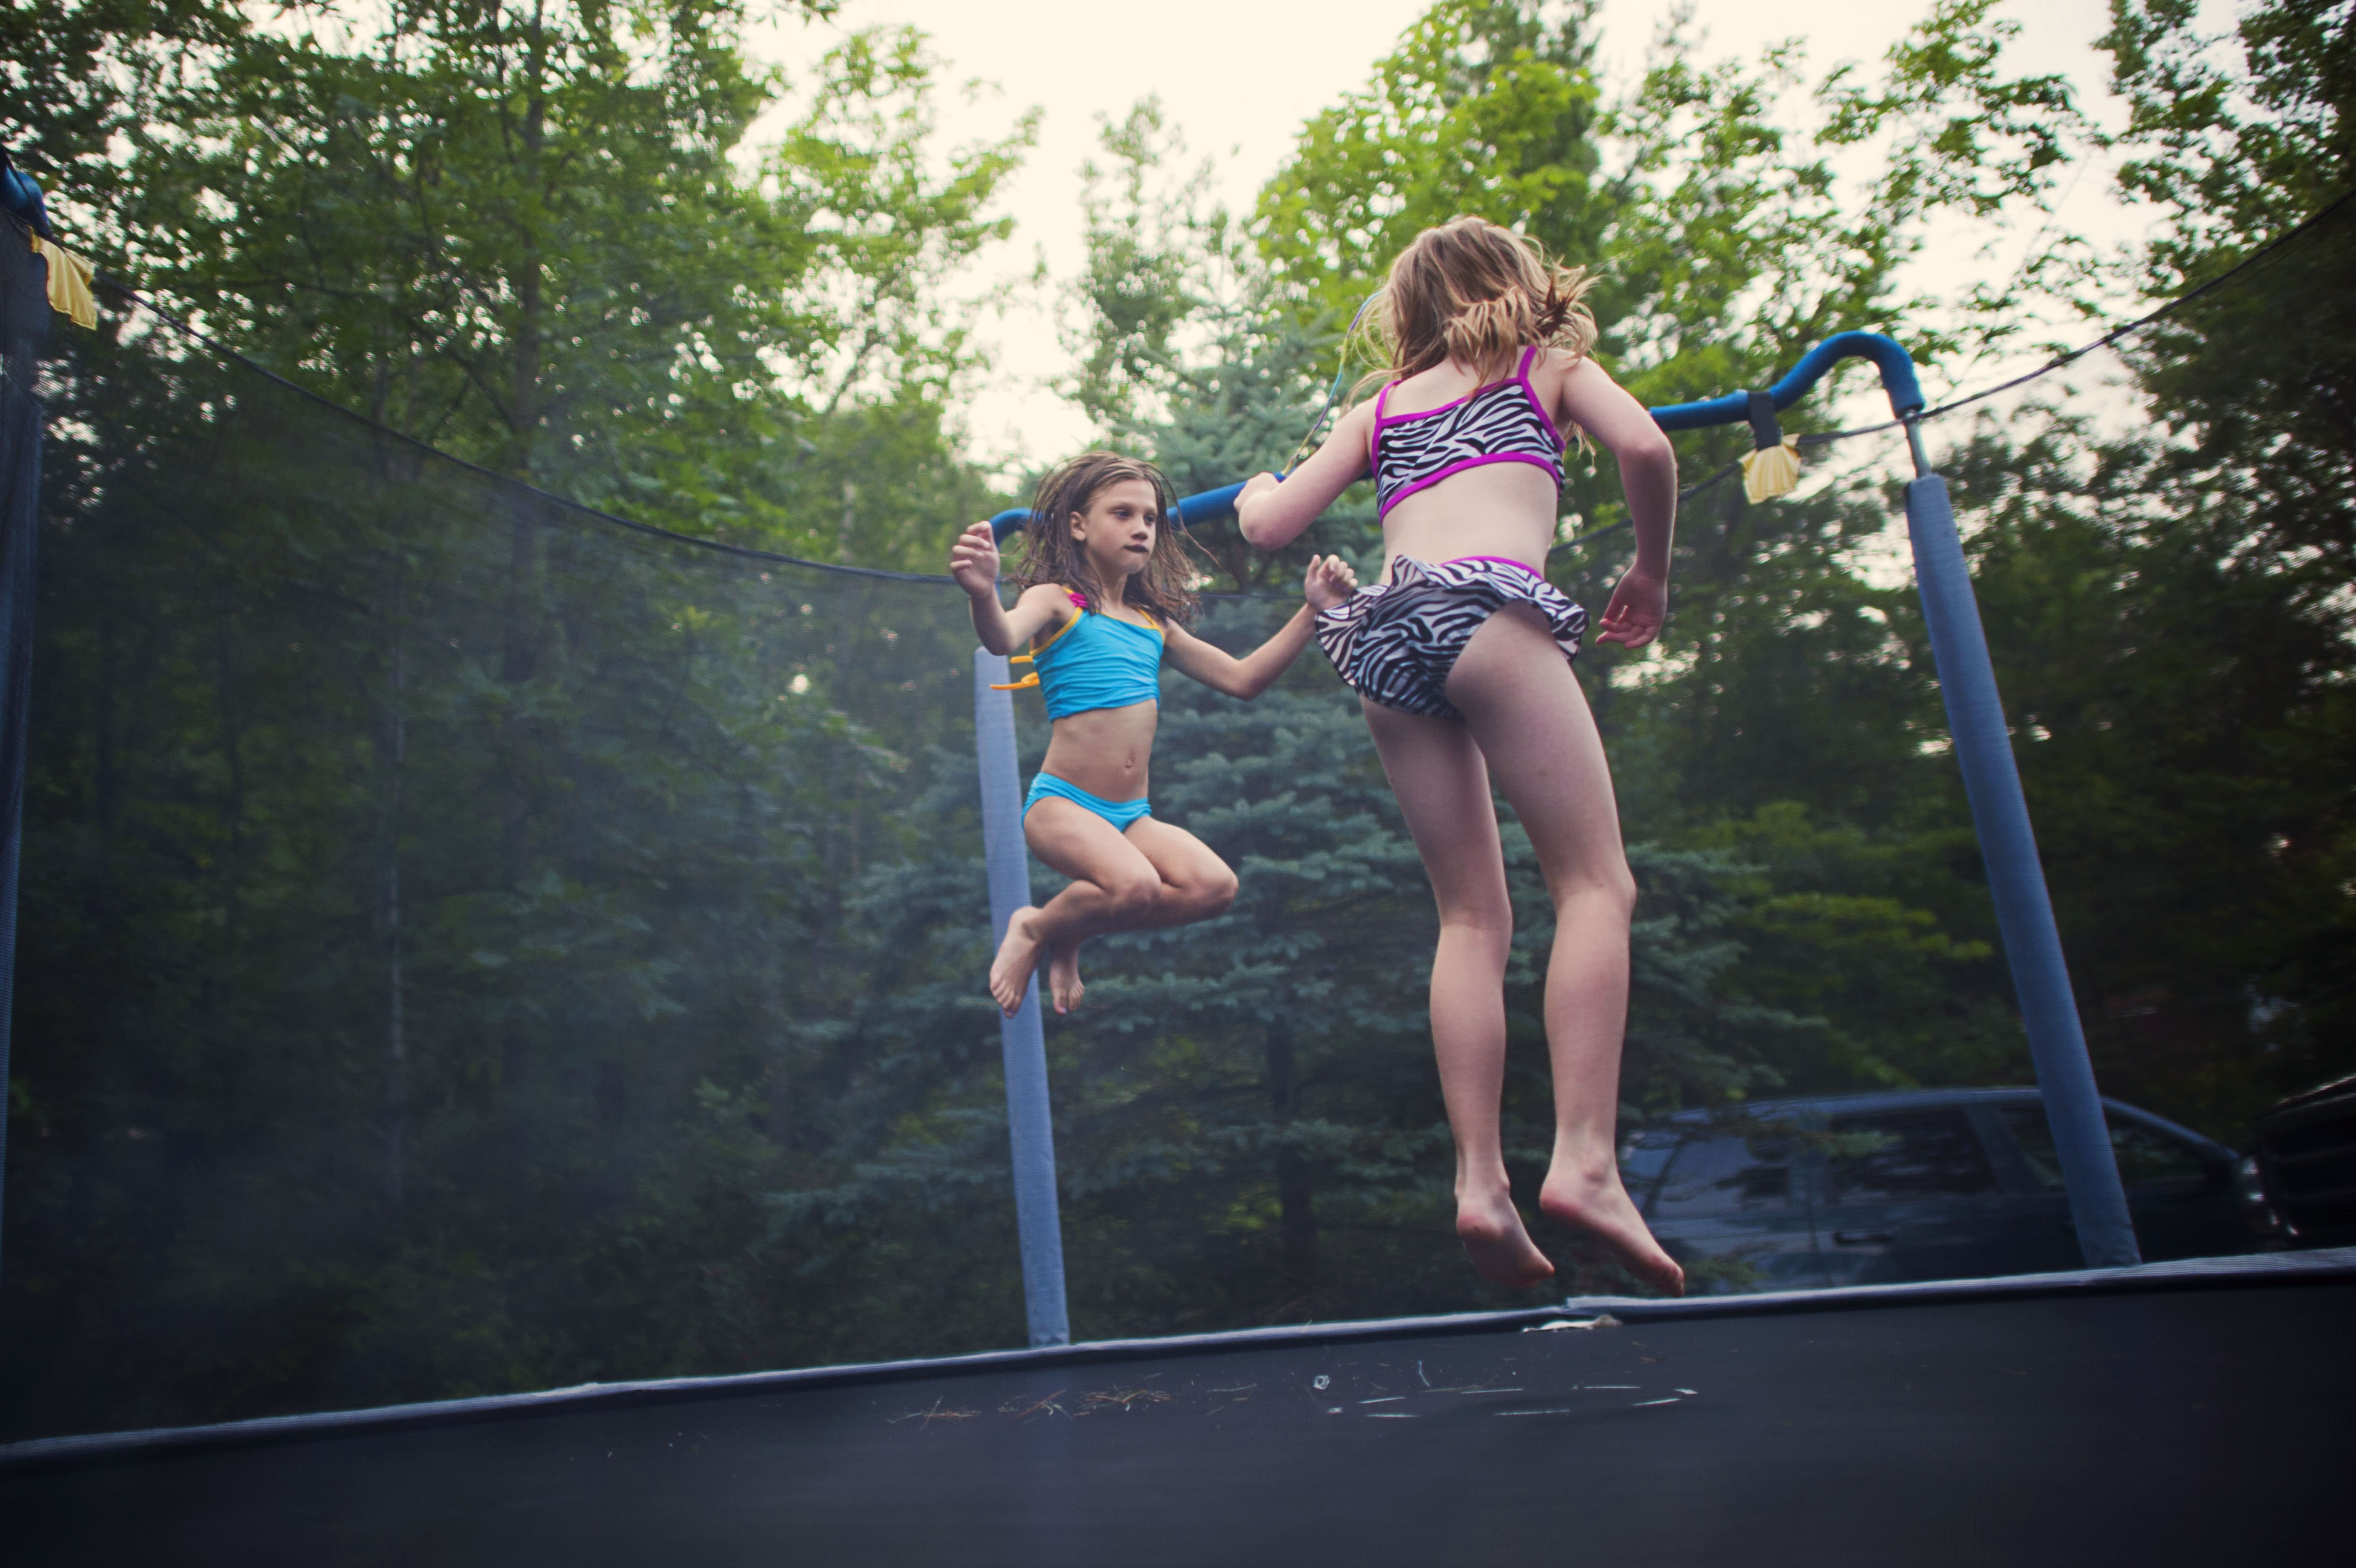 Two girls in swimsuits jumping on a trampoline.